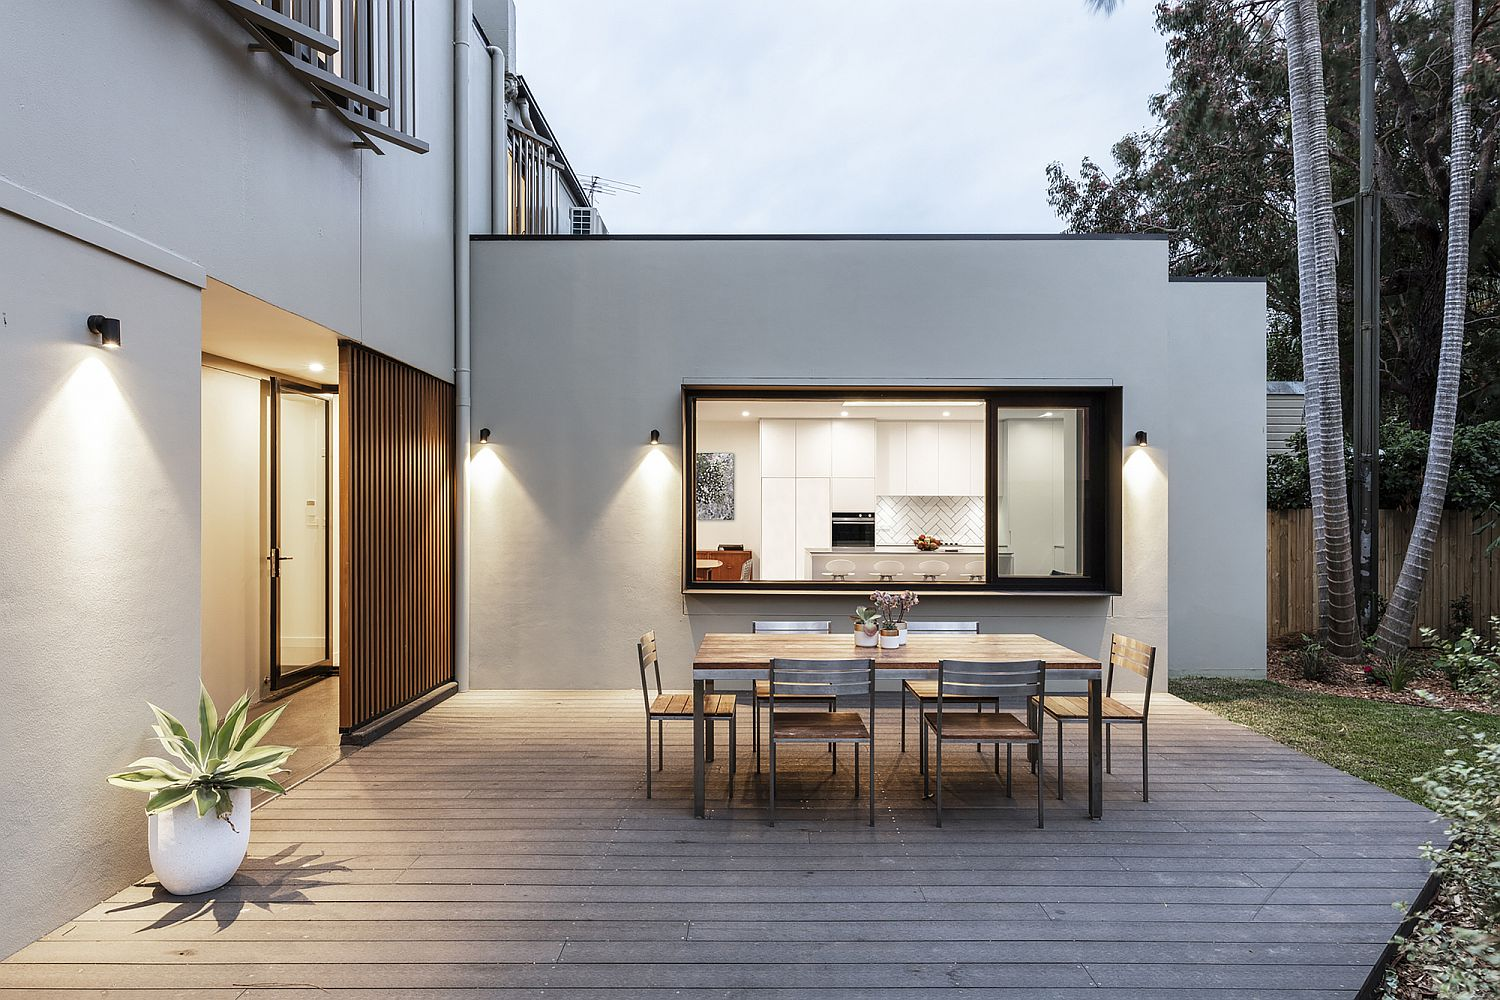 Wooden deck and outdoor dining area of the houe is a showstopper